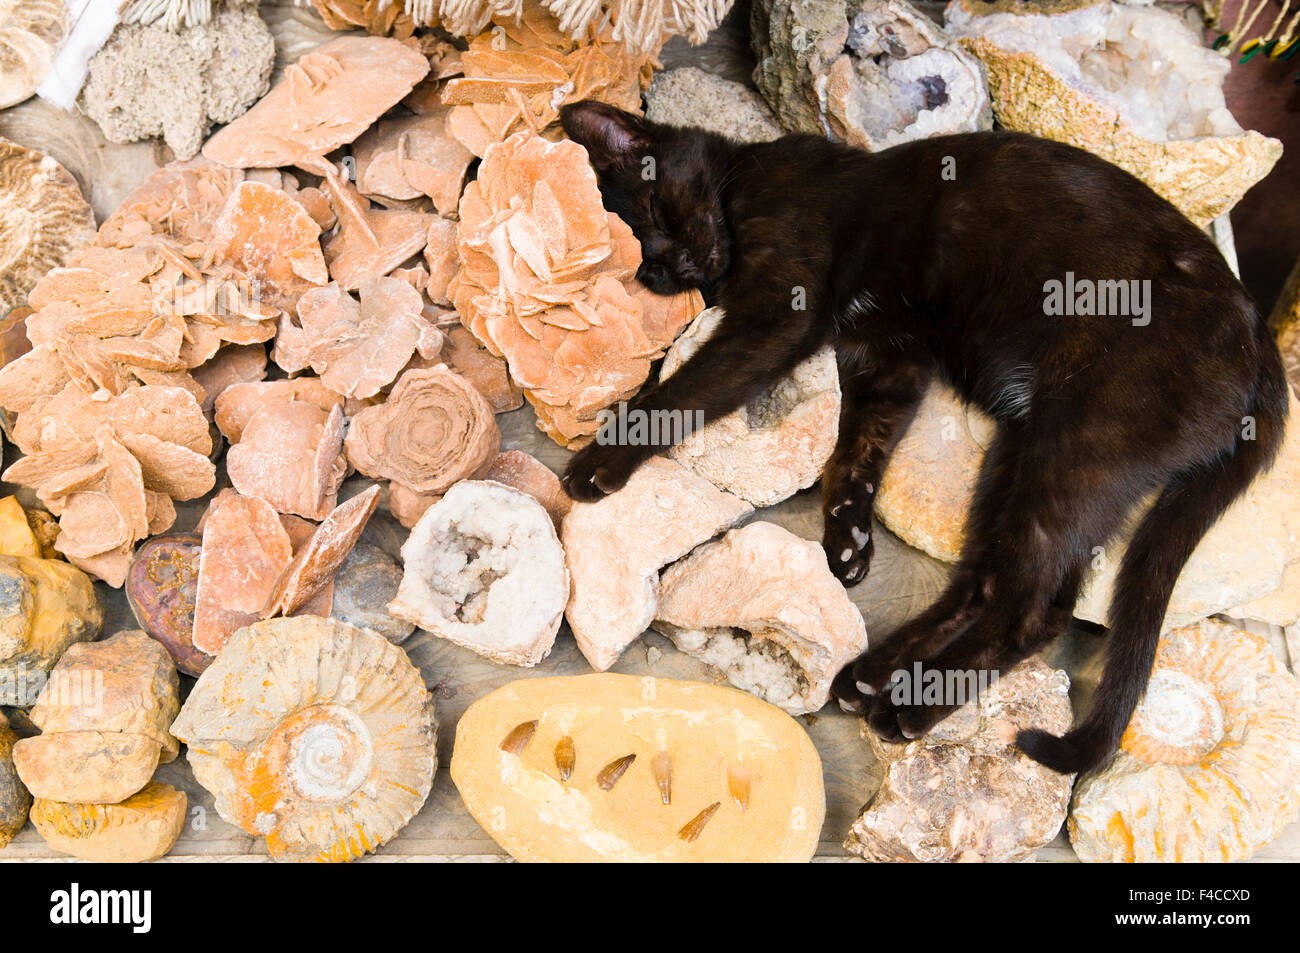 Cat and Fossils for sale in the souk, Medina, Marrakech